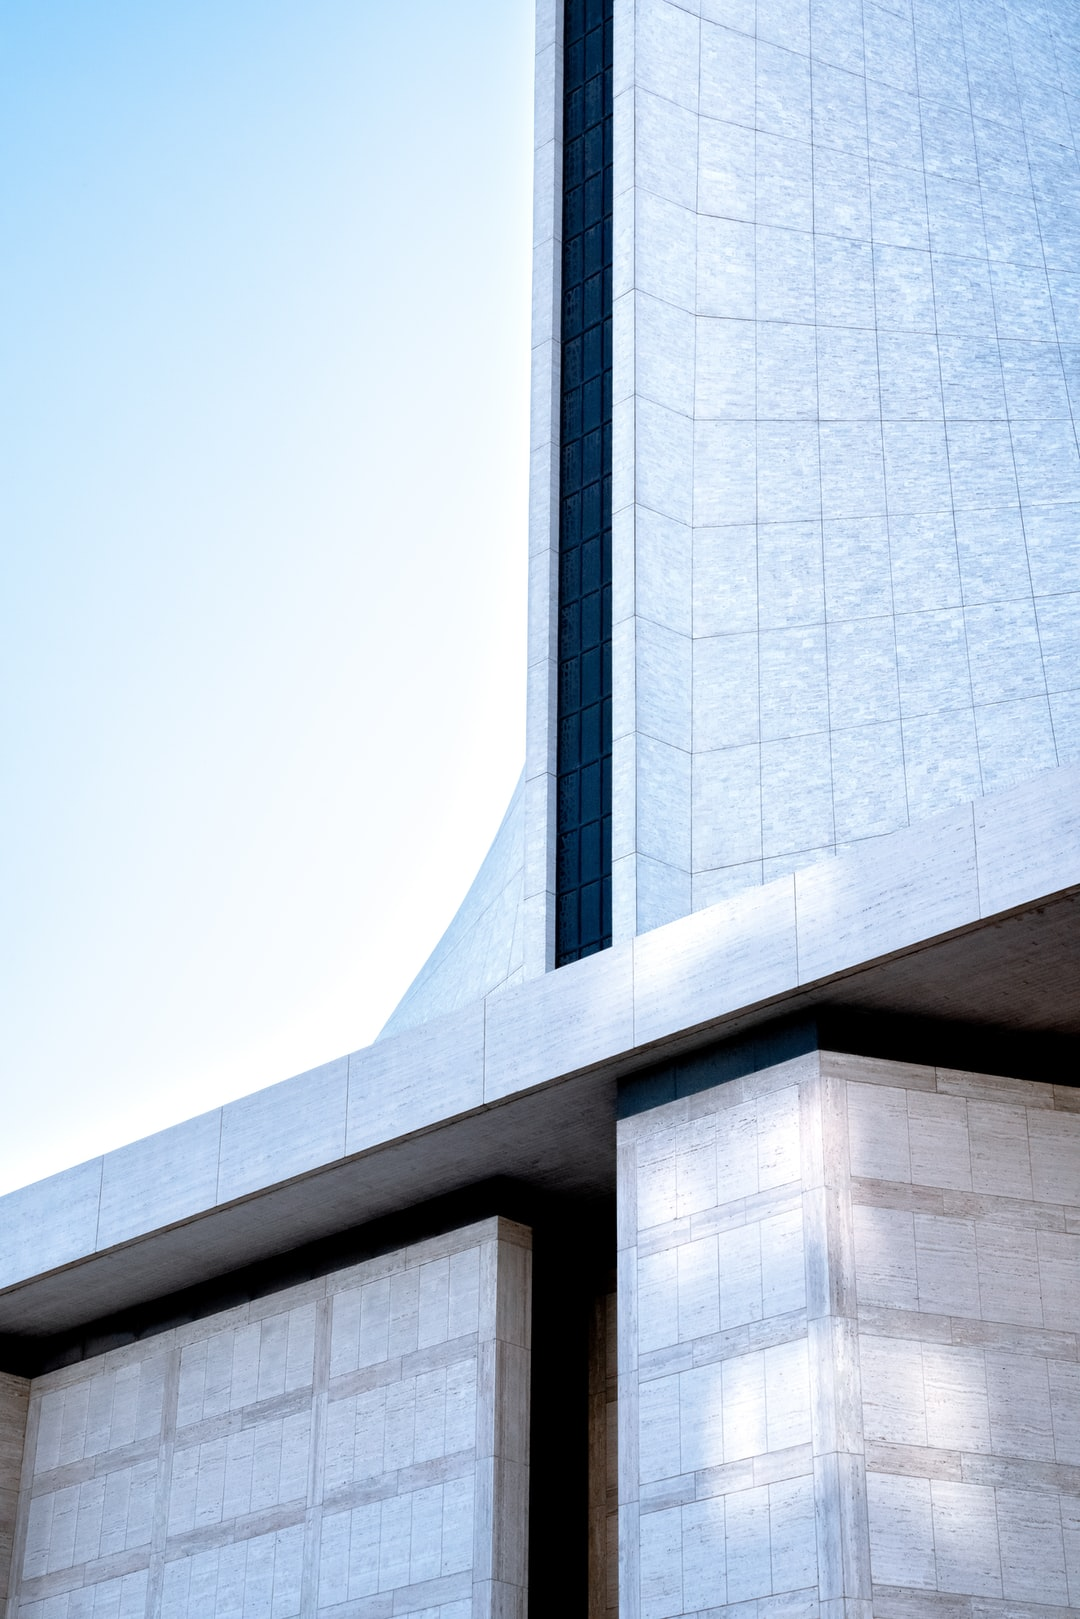 Architectural lines of the Cathedral of Saint Mary of the Assumption in San Francisco.